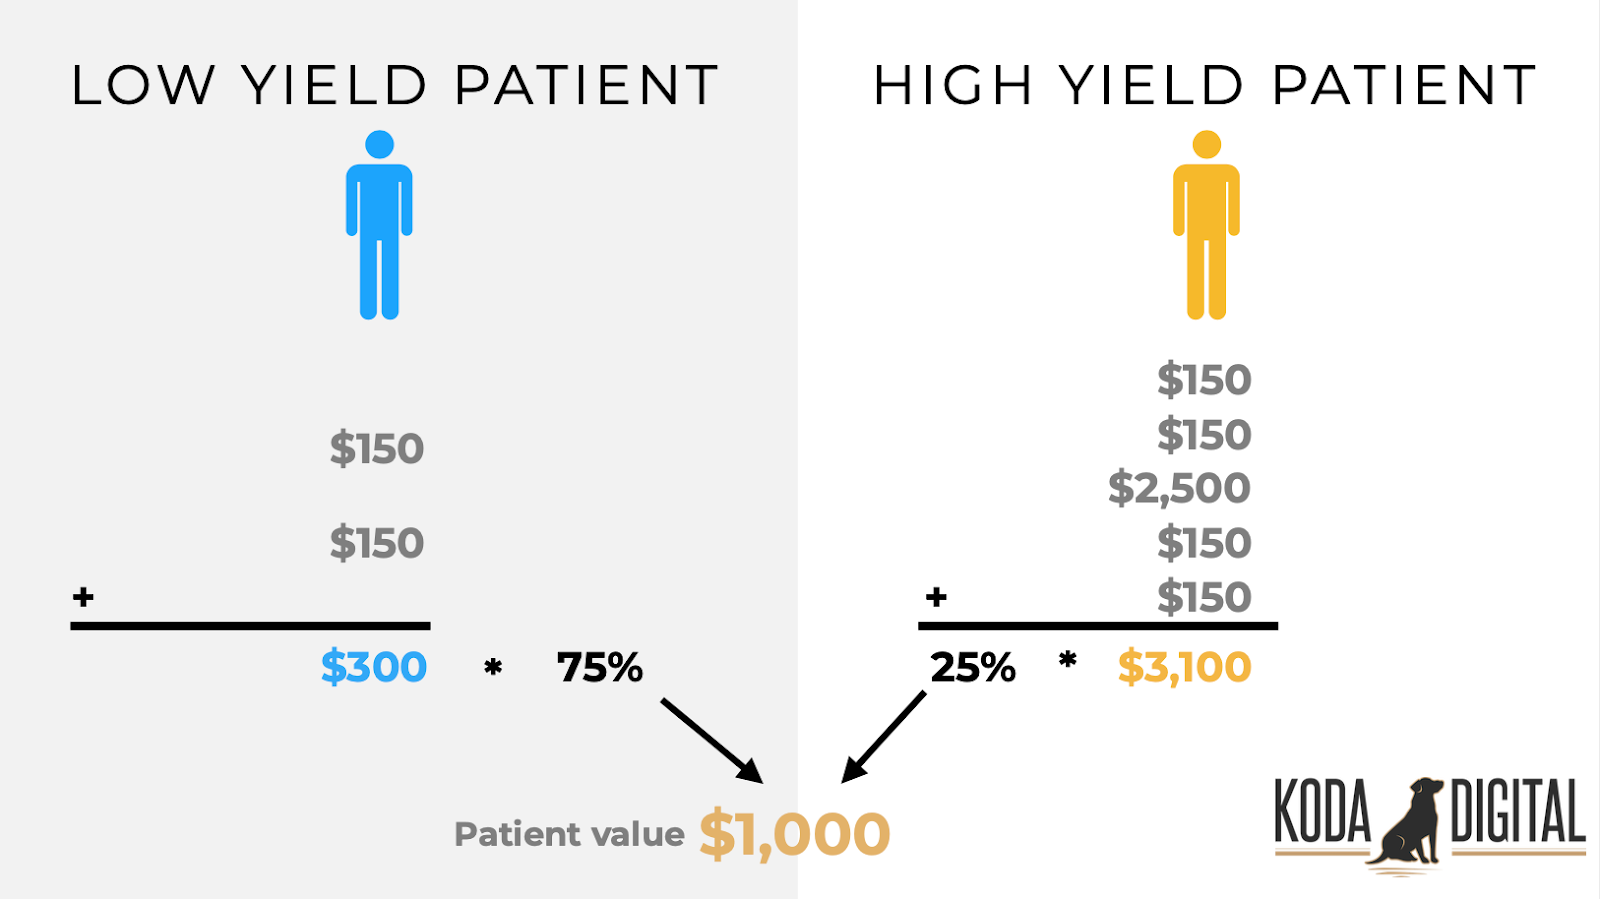 Visual aid example showing how to calculate the average lifetime value of a patient. This example shows low-yield patients with a value of $300 (2 x $150 visits) making up 75% of patients and high-yield patients with a value of $3,100 (4 x $150 visits, 1 x $2,500 procedure) making up the other 25% for an average patient value of $1,000.